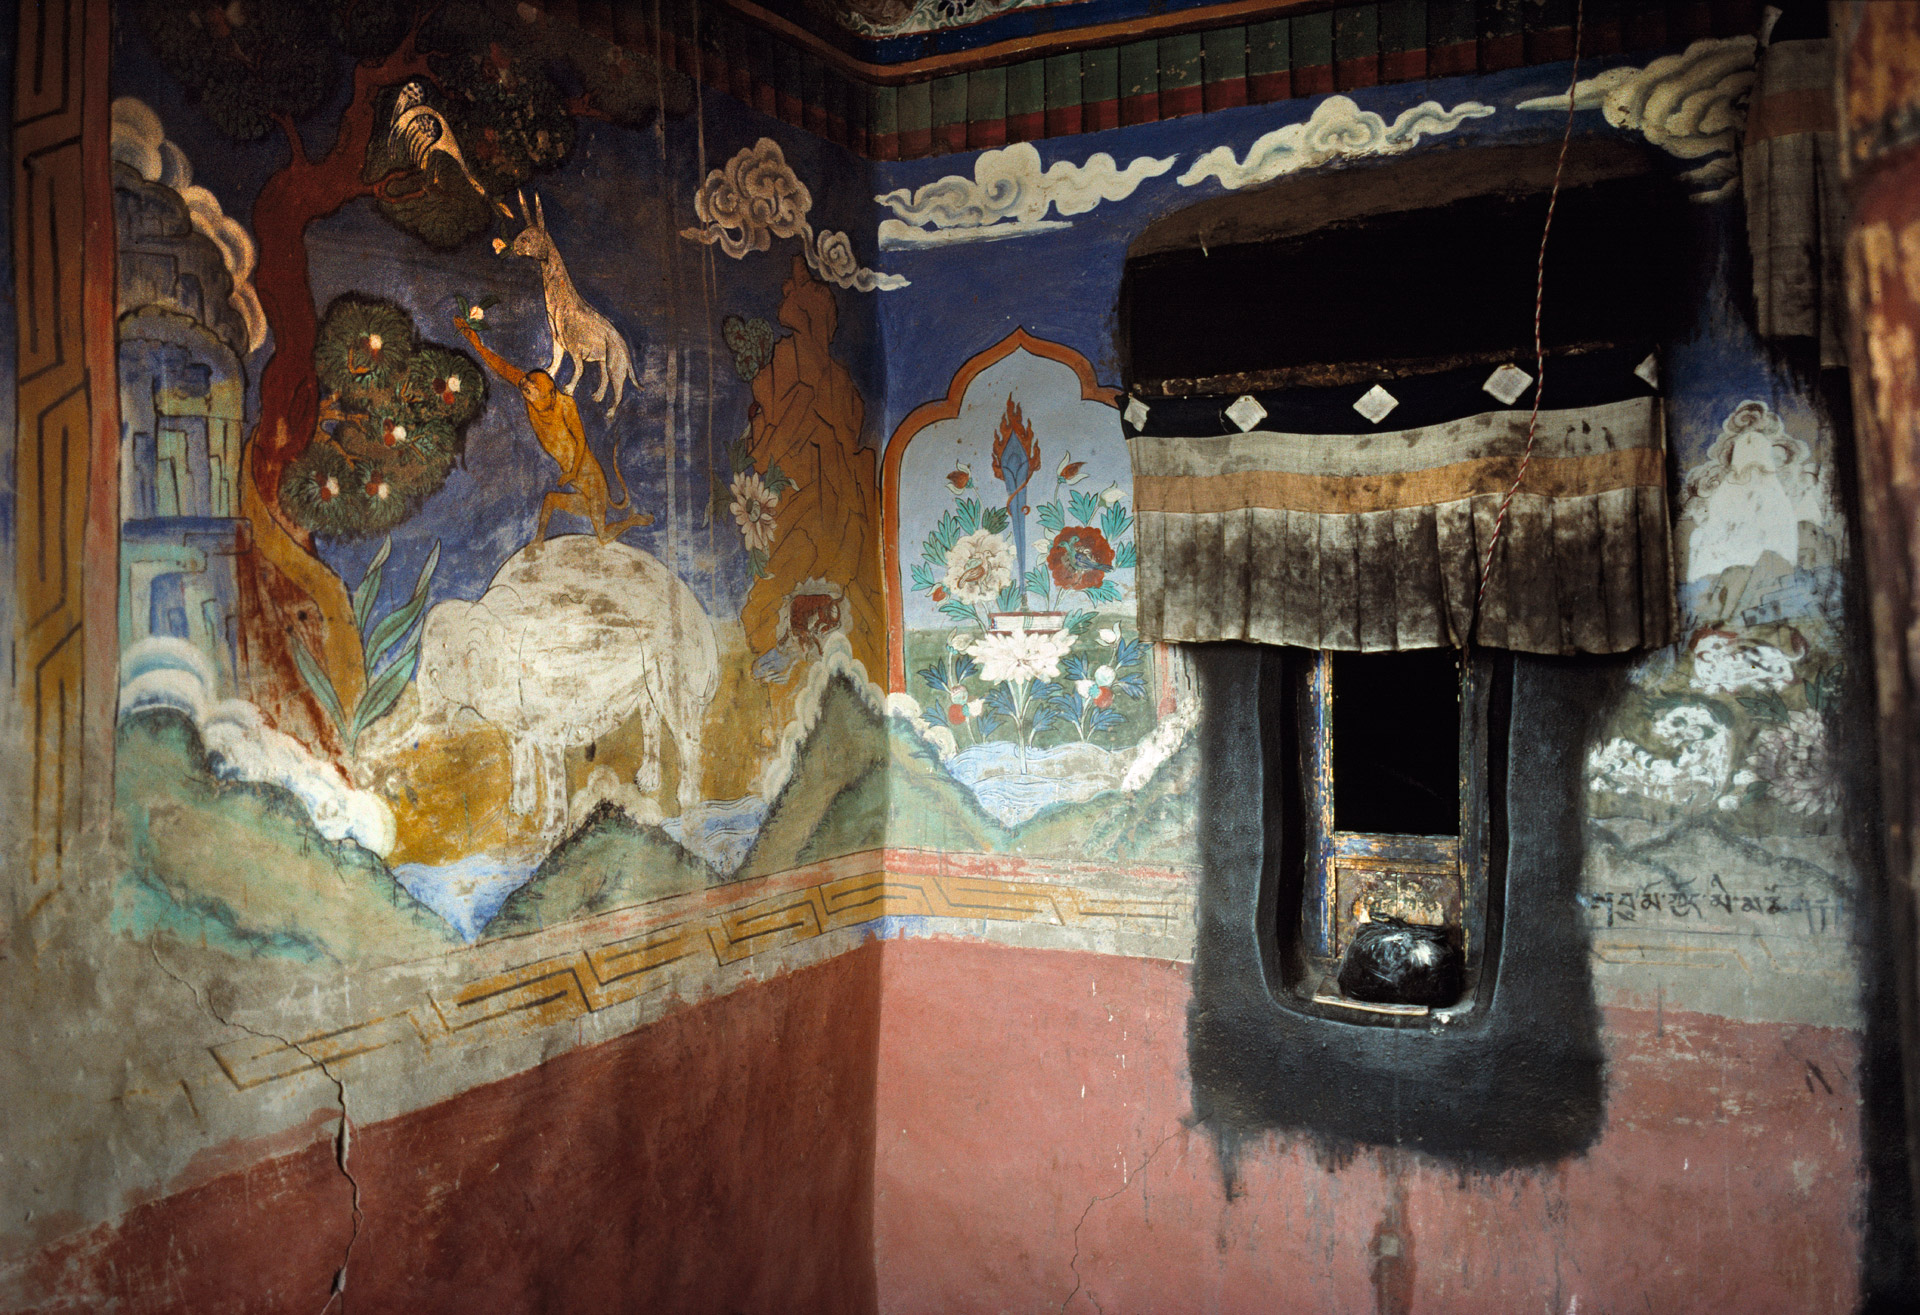 Religious murals depicting a donkey standing on the shoulders of a monkey which again is standing on the shoulders of an elephant at Thiksey Monastery in Ladakh